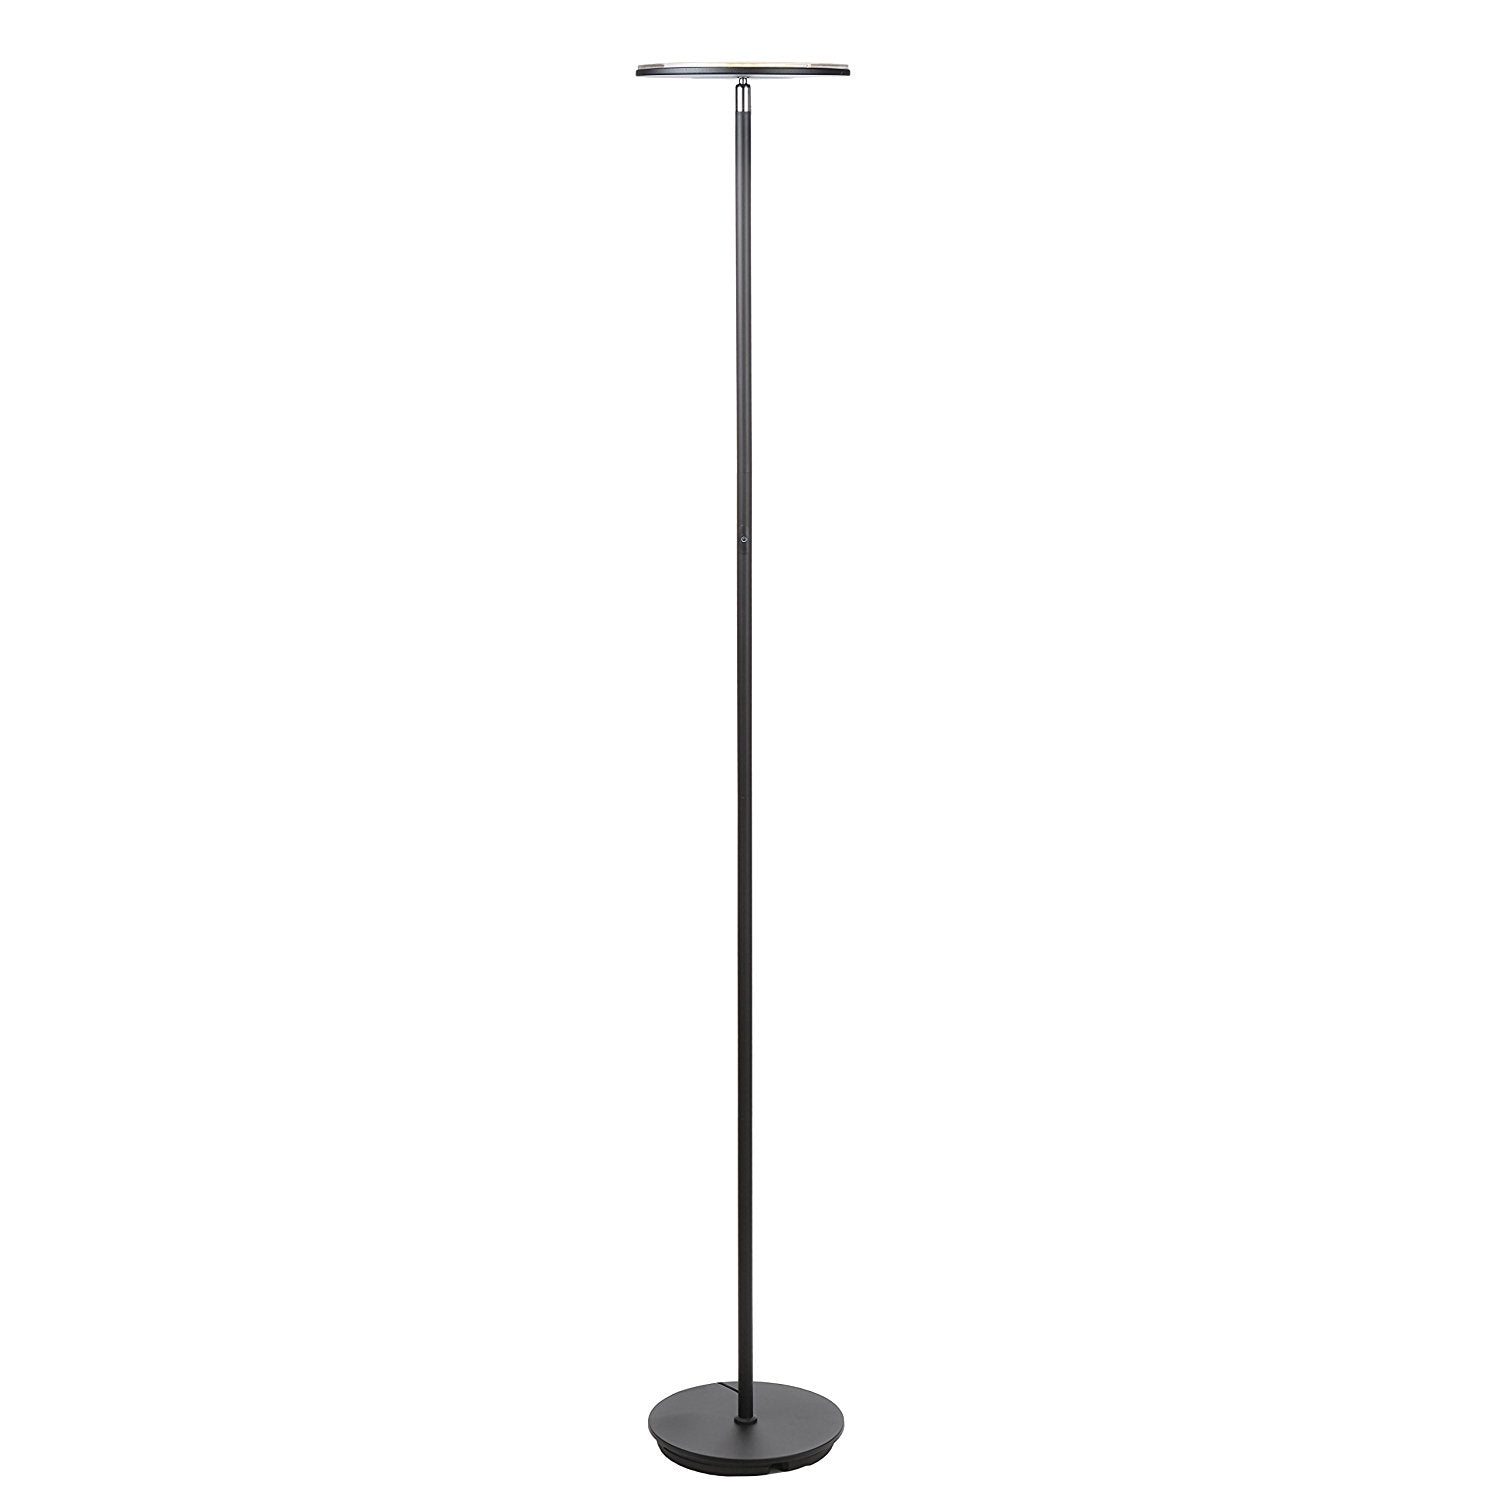 with nice full led brightech dimmable standing stand of sale that floor corner traditional outstanding black for lamps lights size best room dimmer reading buy living lamp narrow about sky torchiere switch halogen rattan tall image bedroom light table up